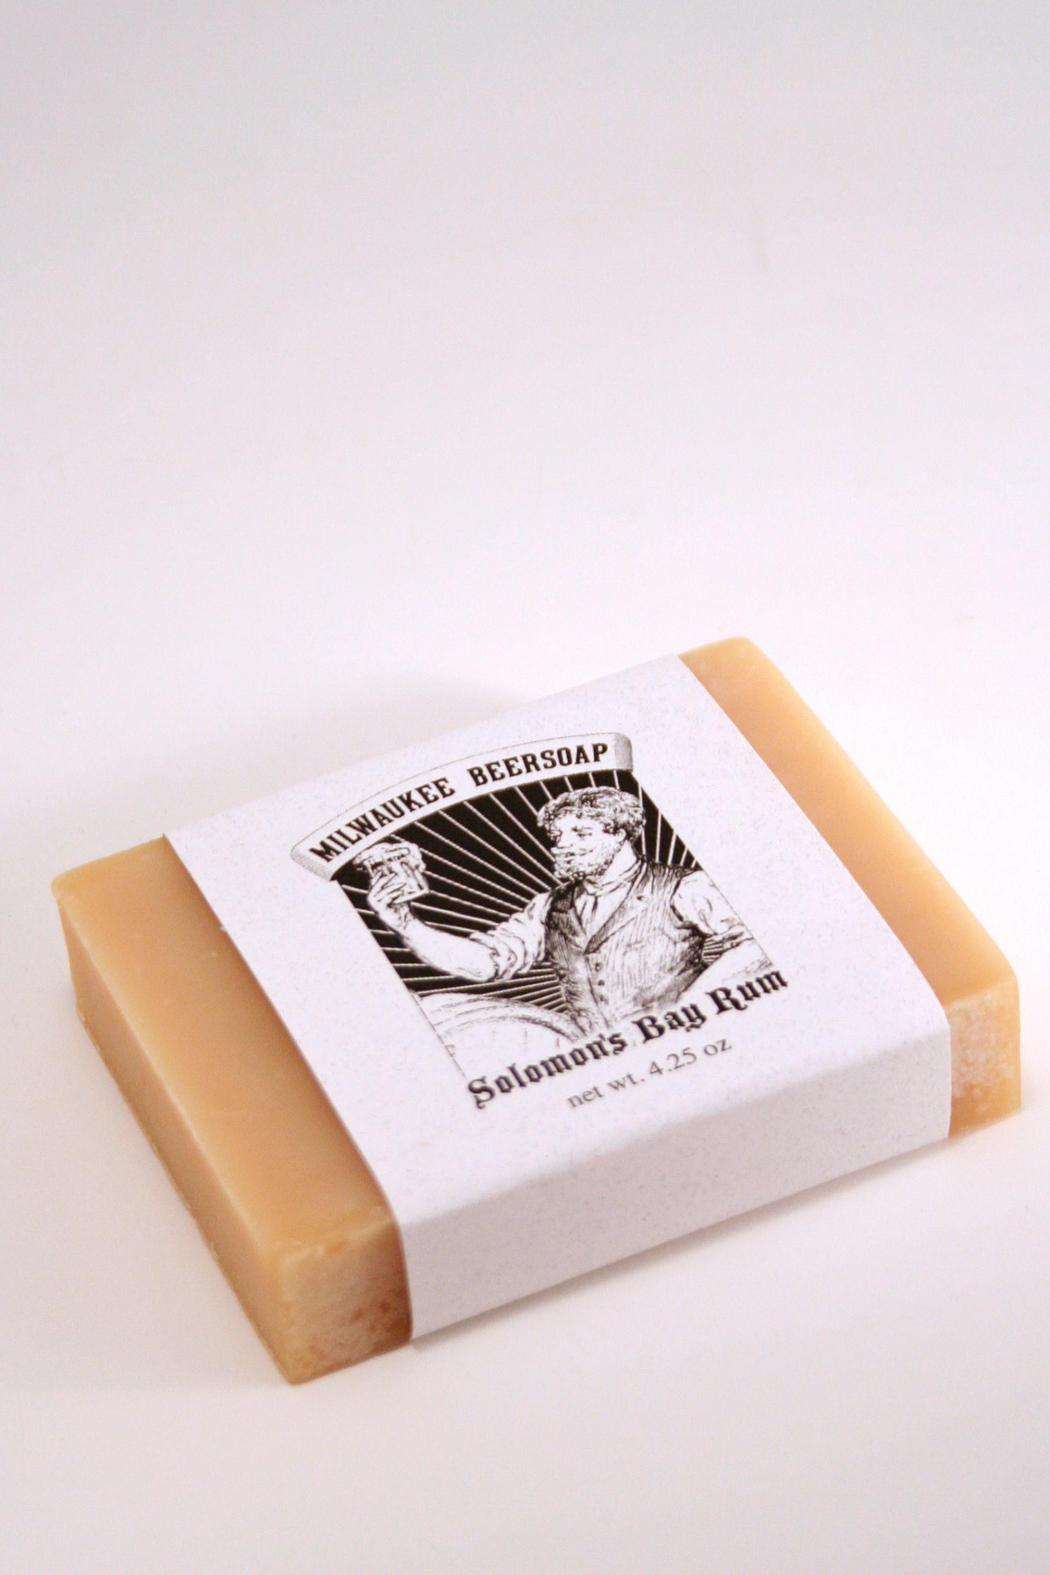 Milwaukee Beersoap  Soloman's Bayrum Soap - Main Image